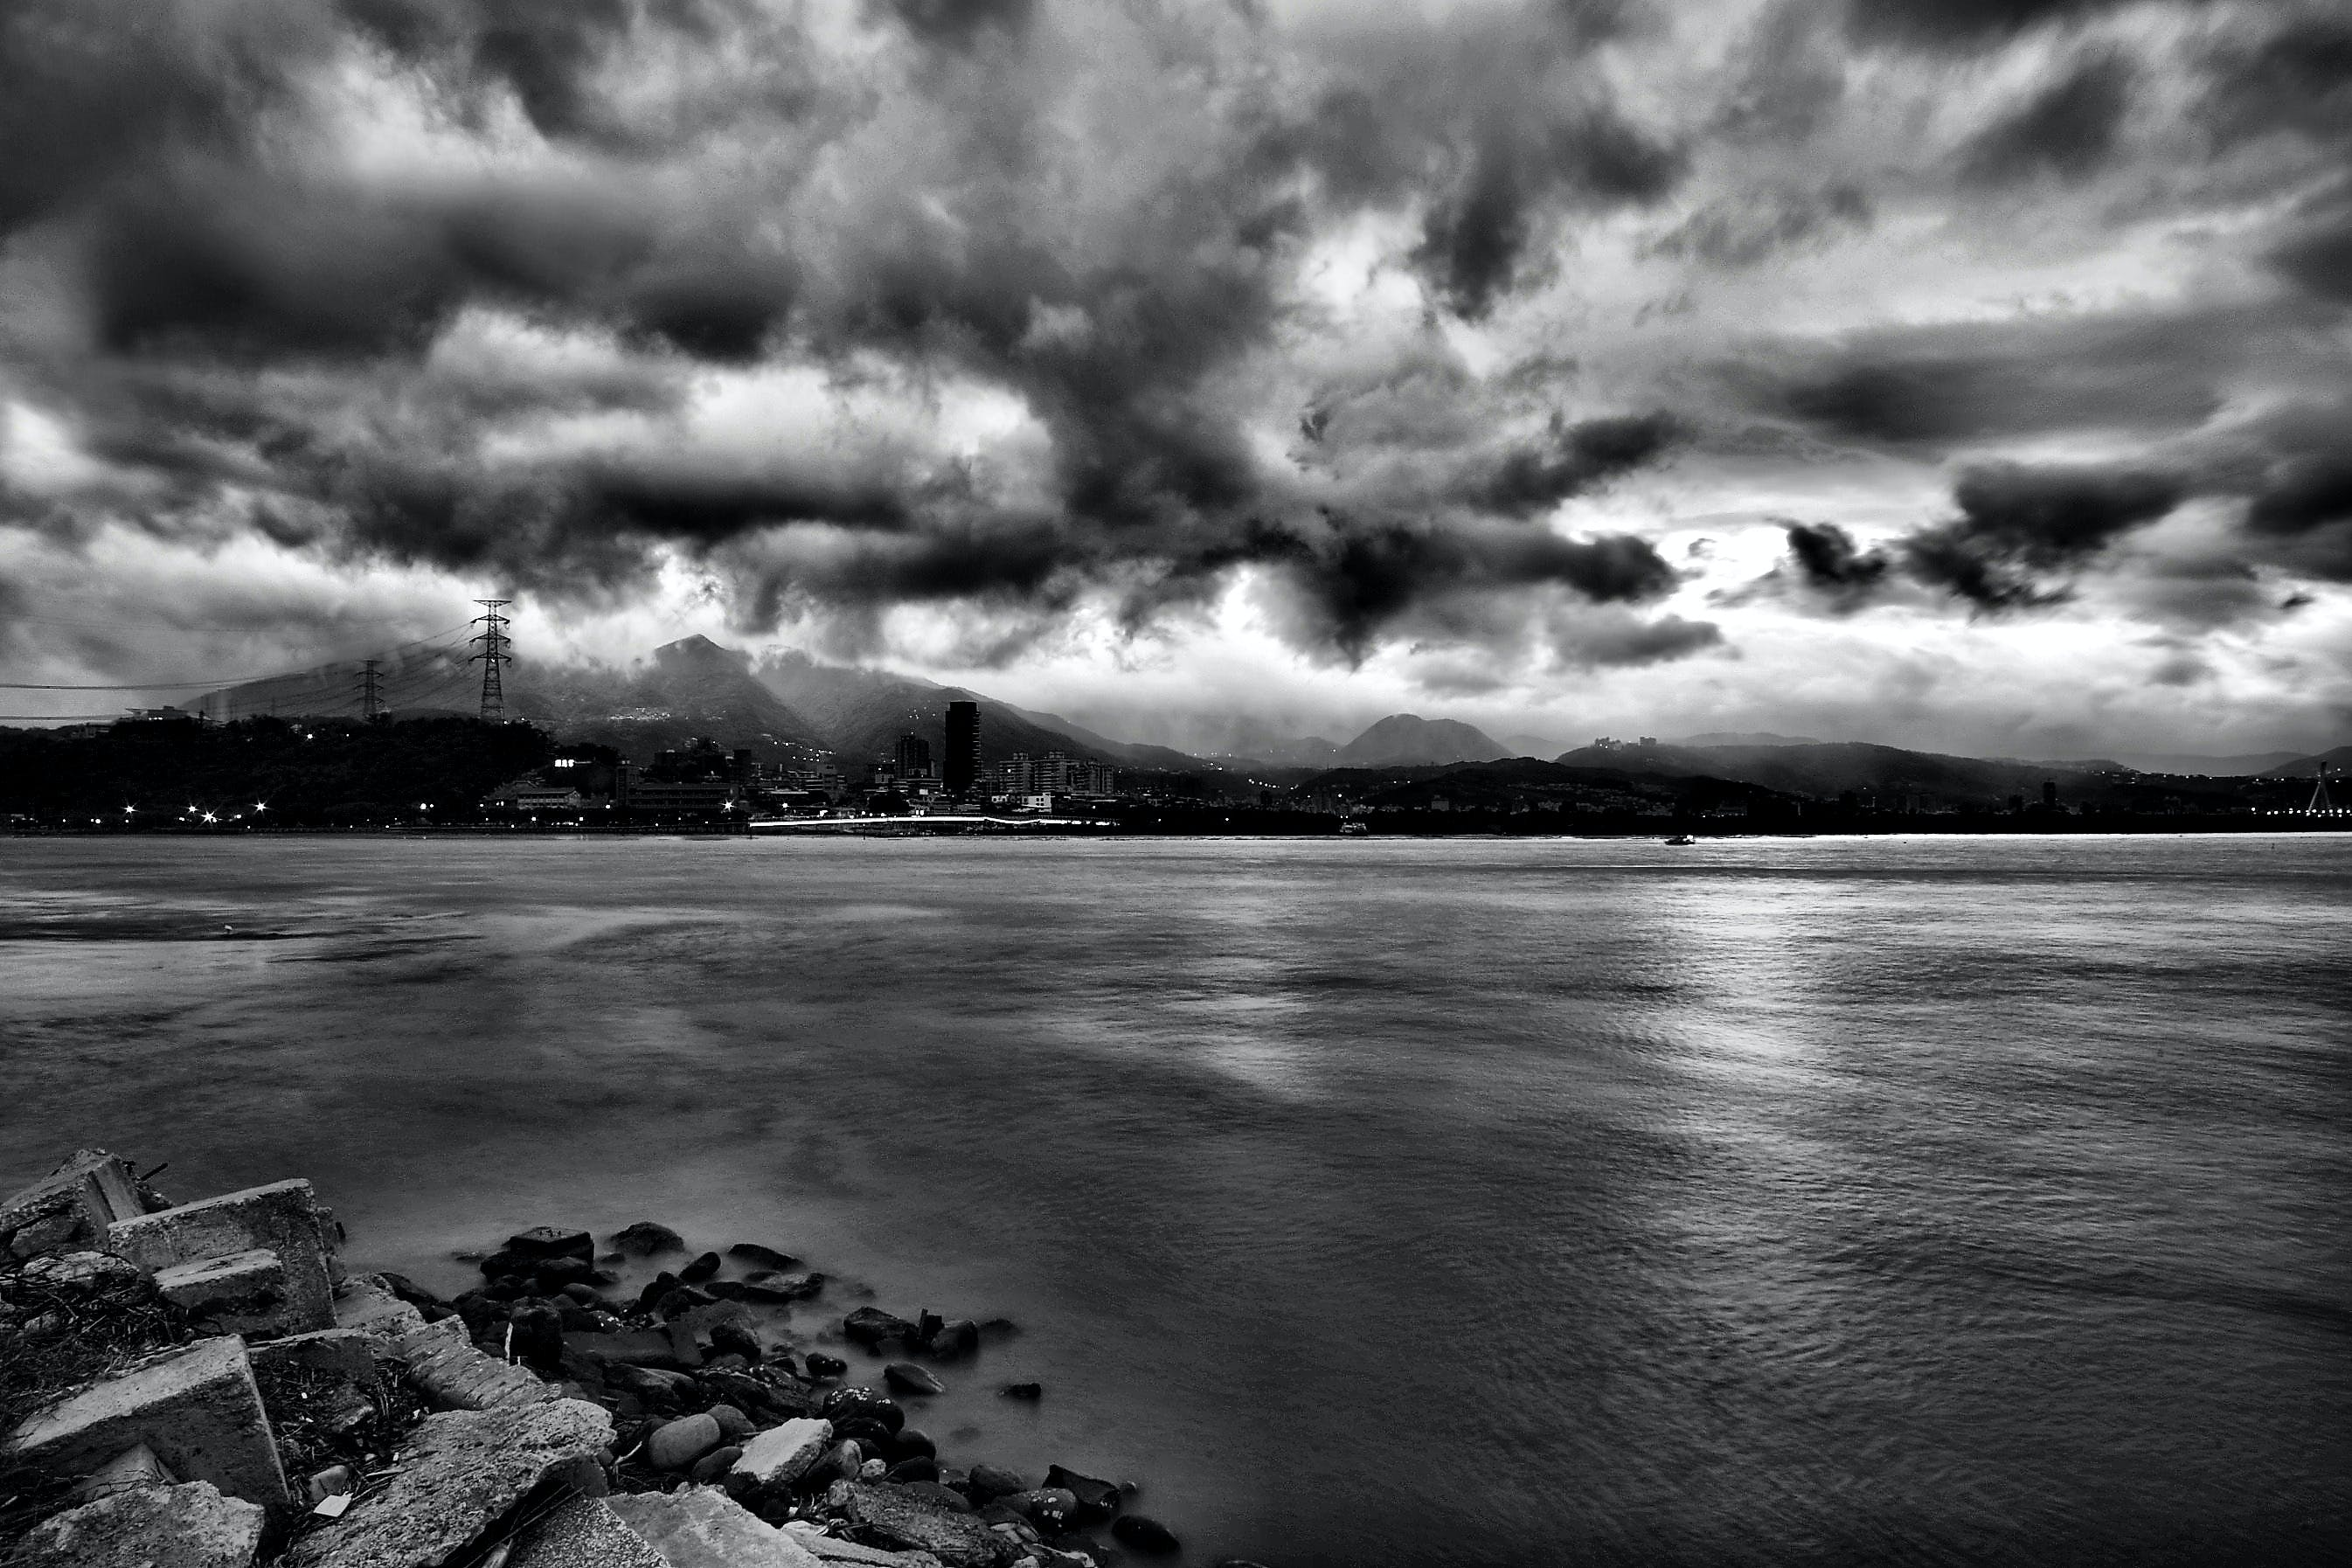 Grayscale Photo of Sea during Cloudy Sky at Daytime